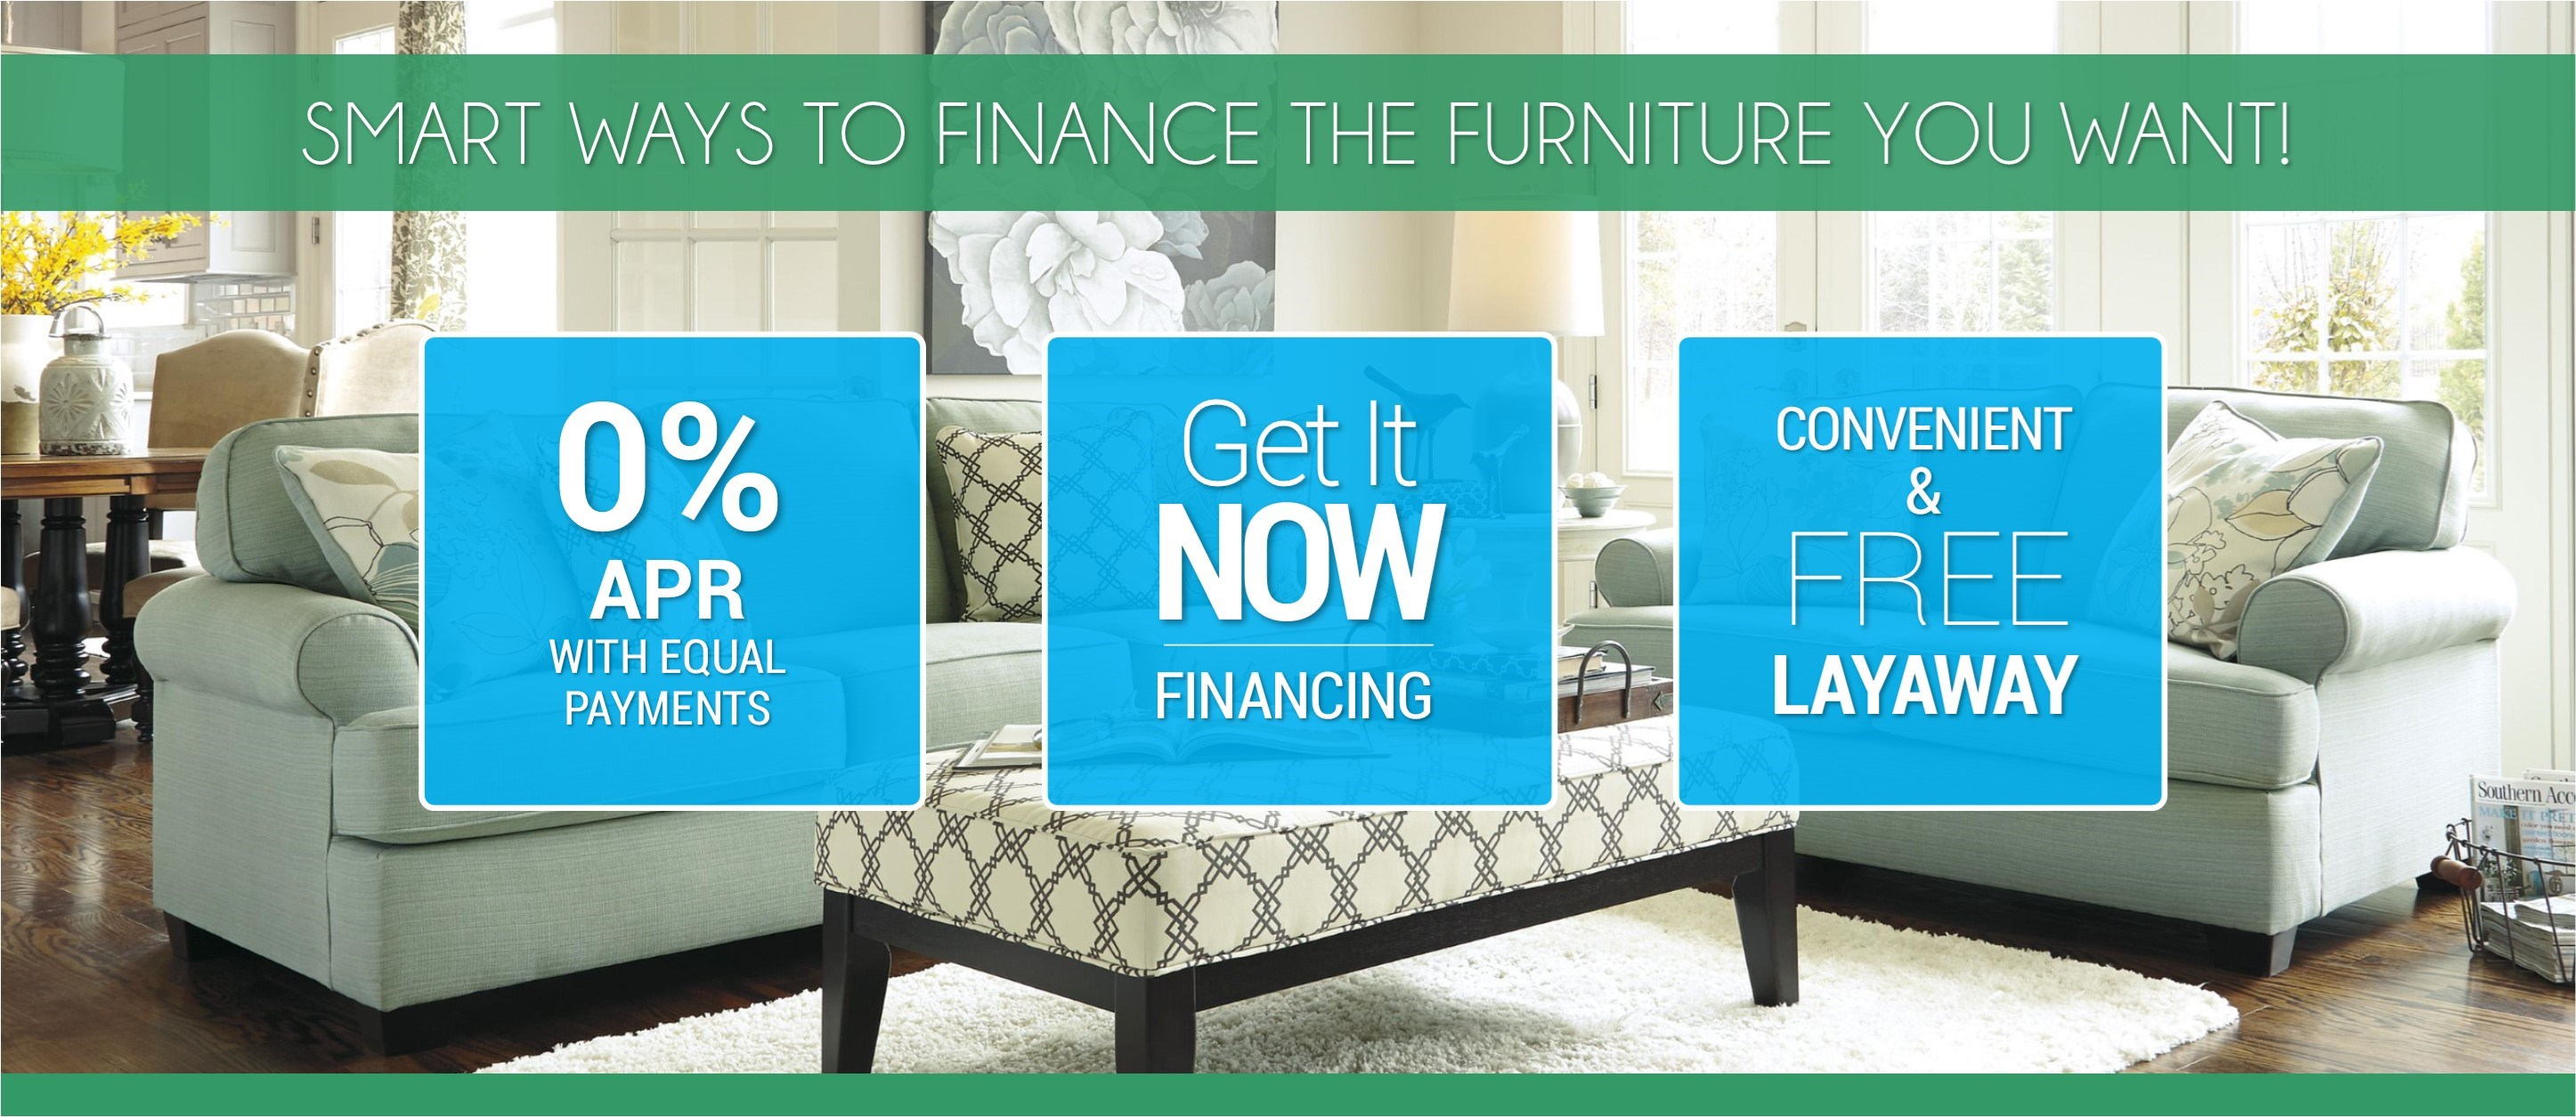 alvin options crosby leasing furniture and houston lonestar rustic financing montgomery